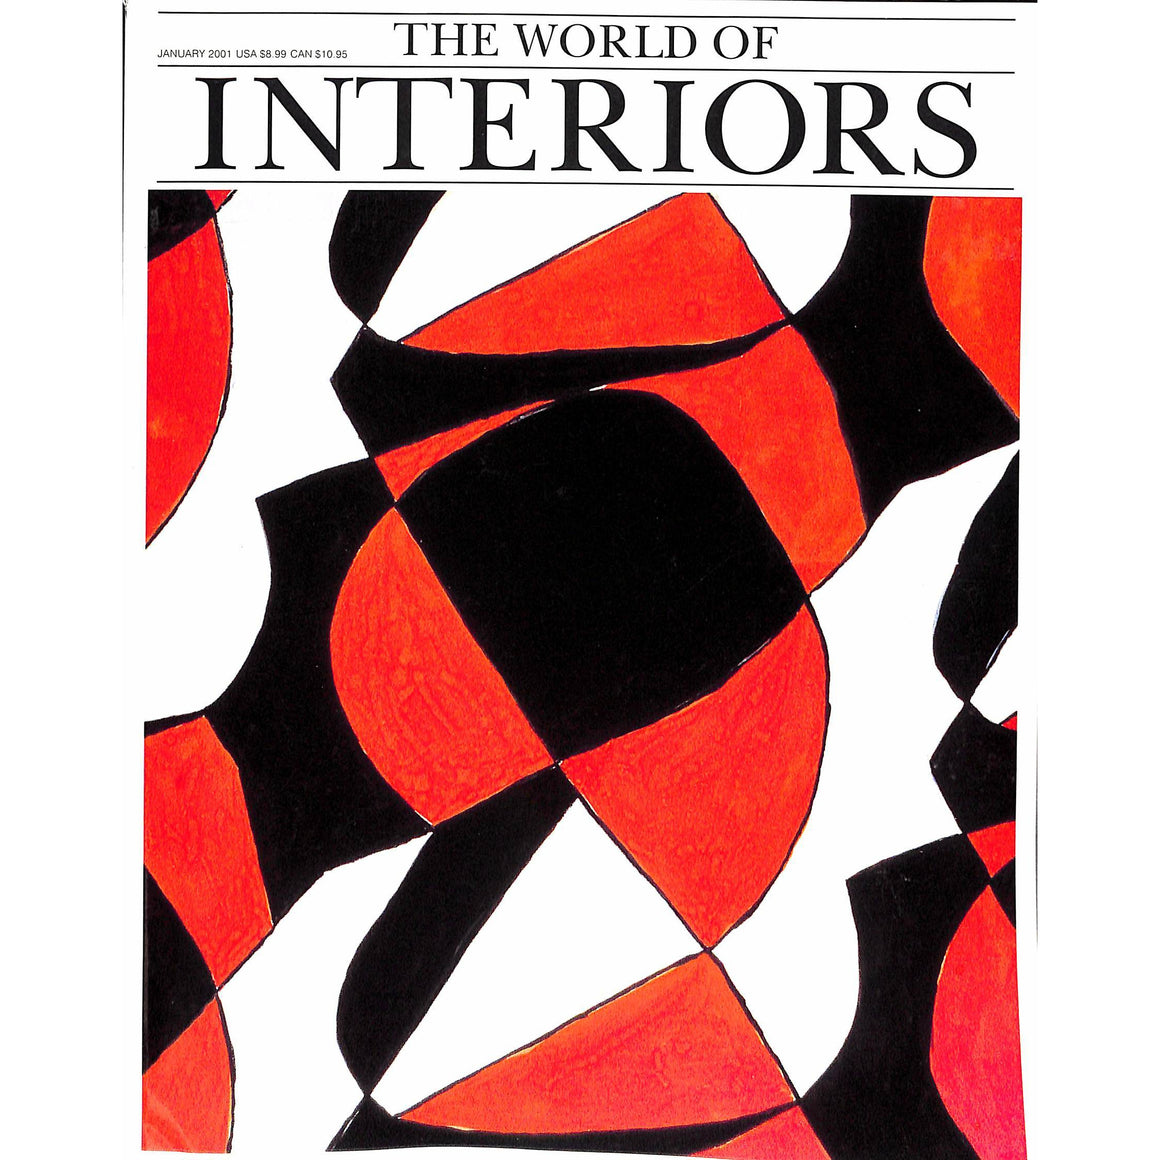 'The World of Interiors January 2001'